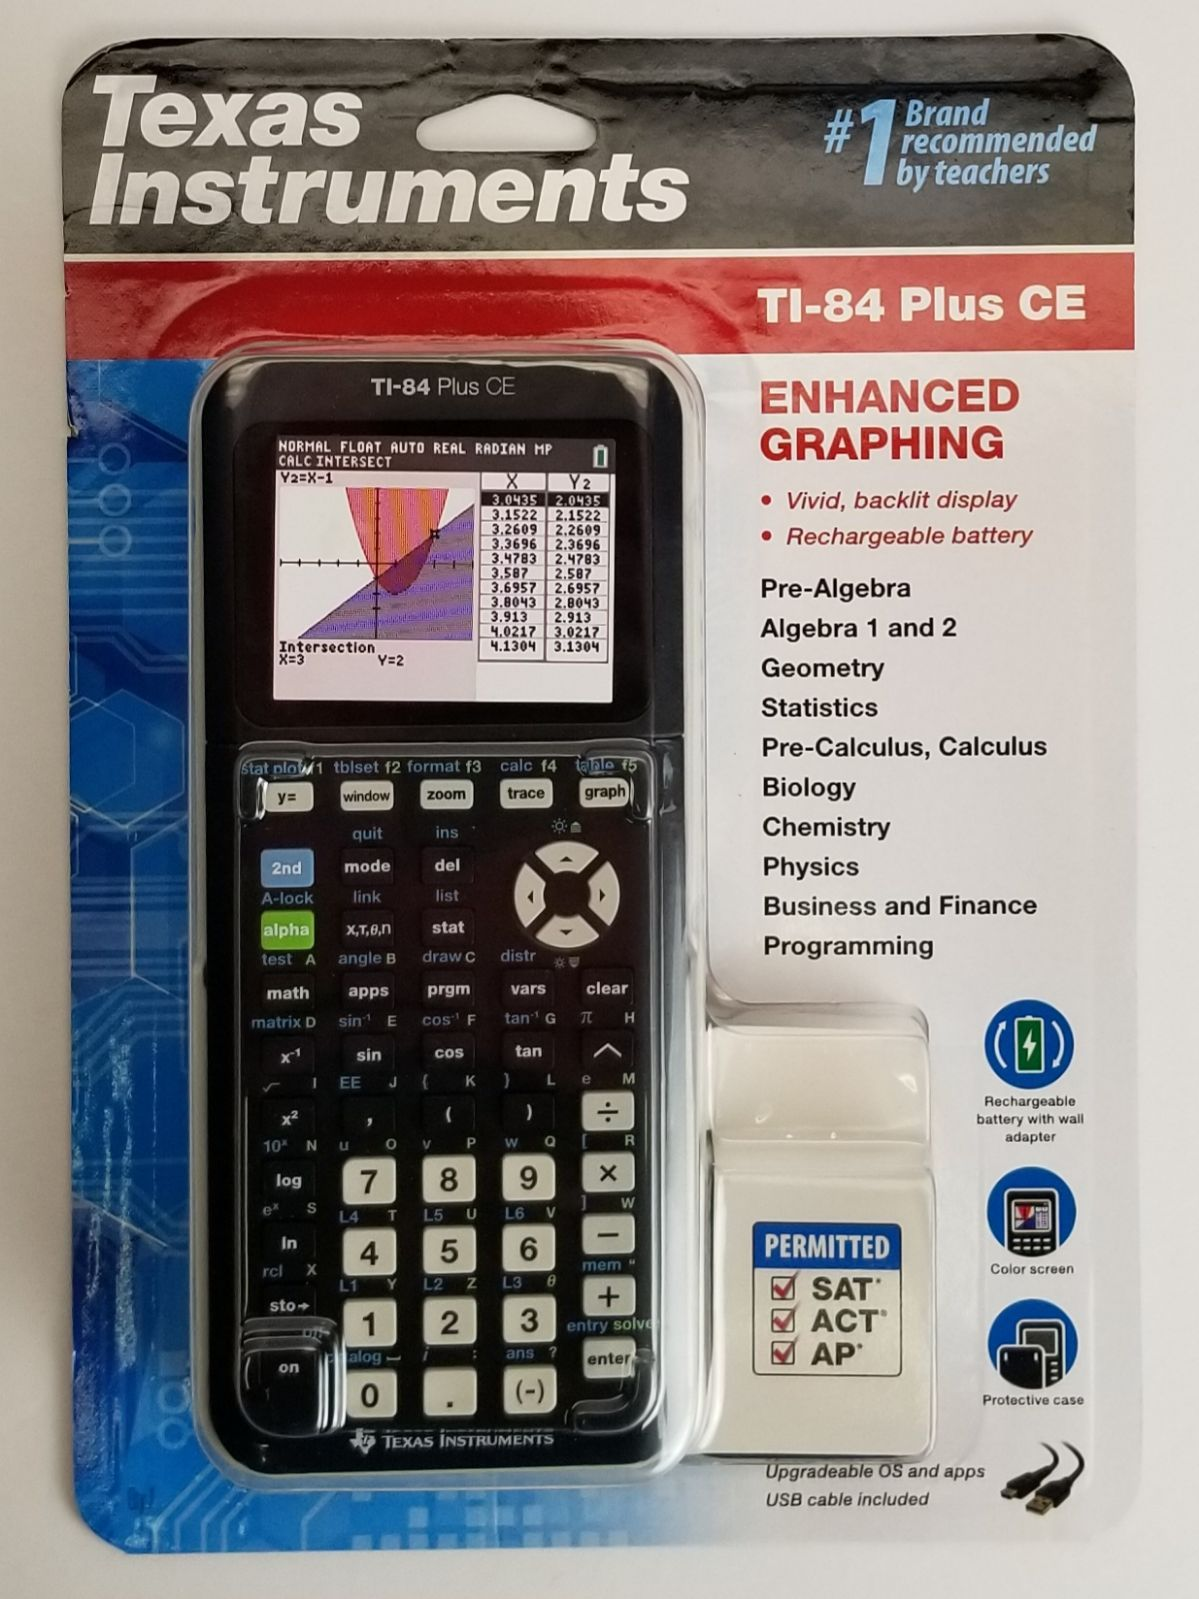 The TI84 Plus CE is approved for use on the following